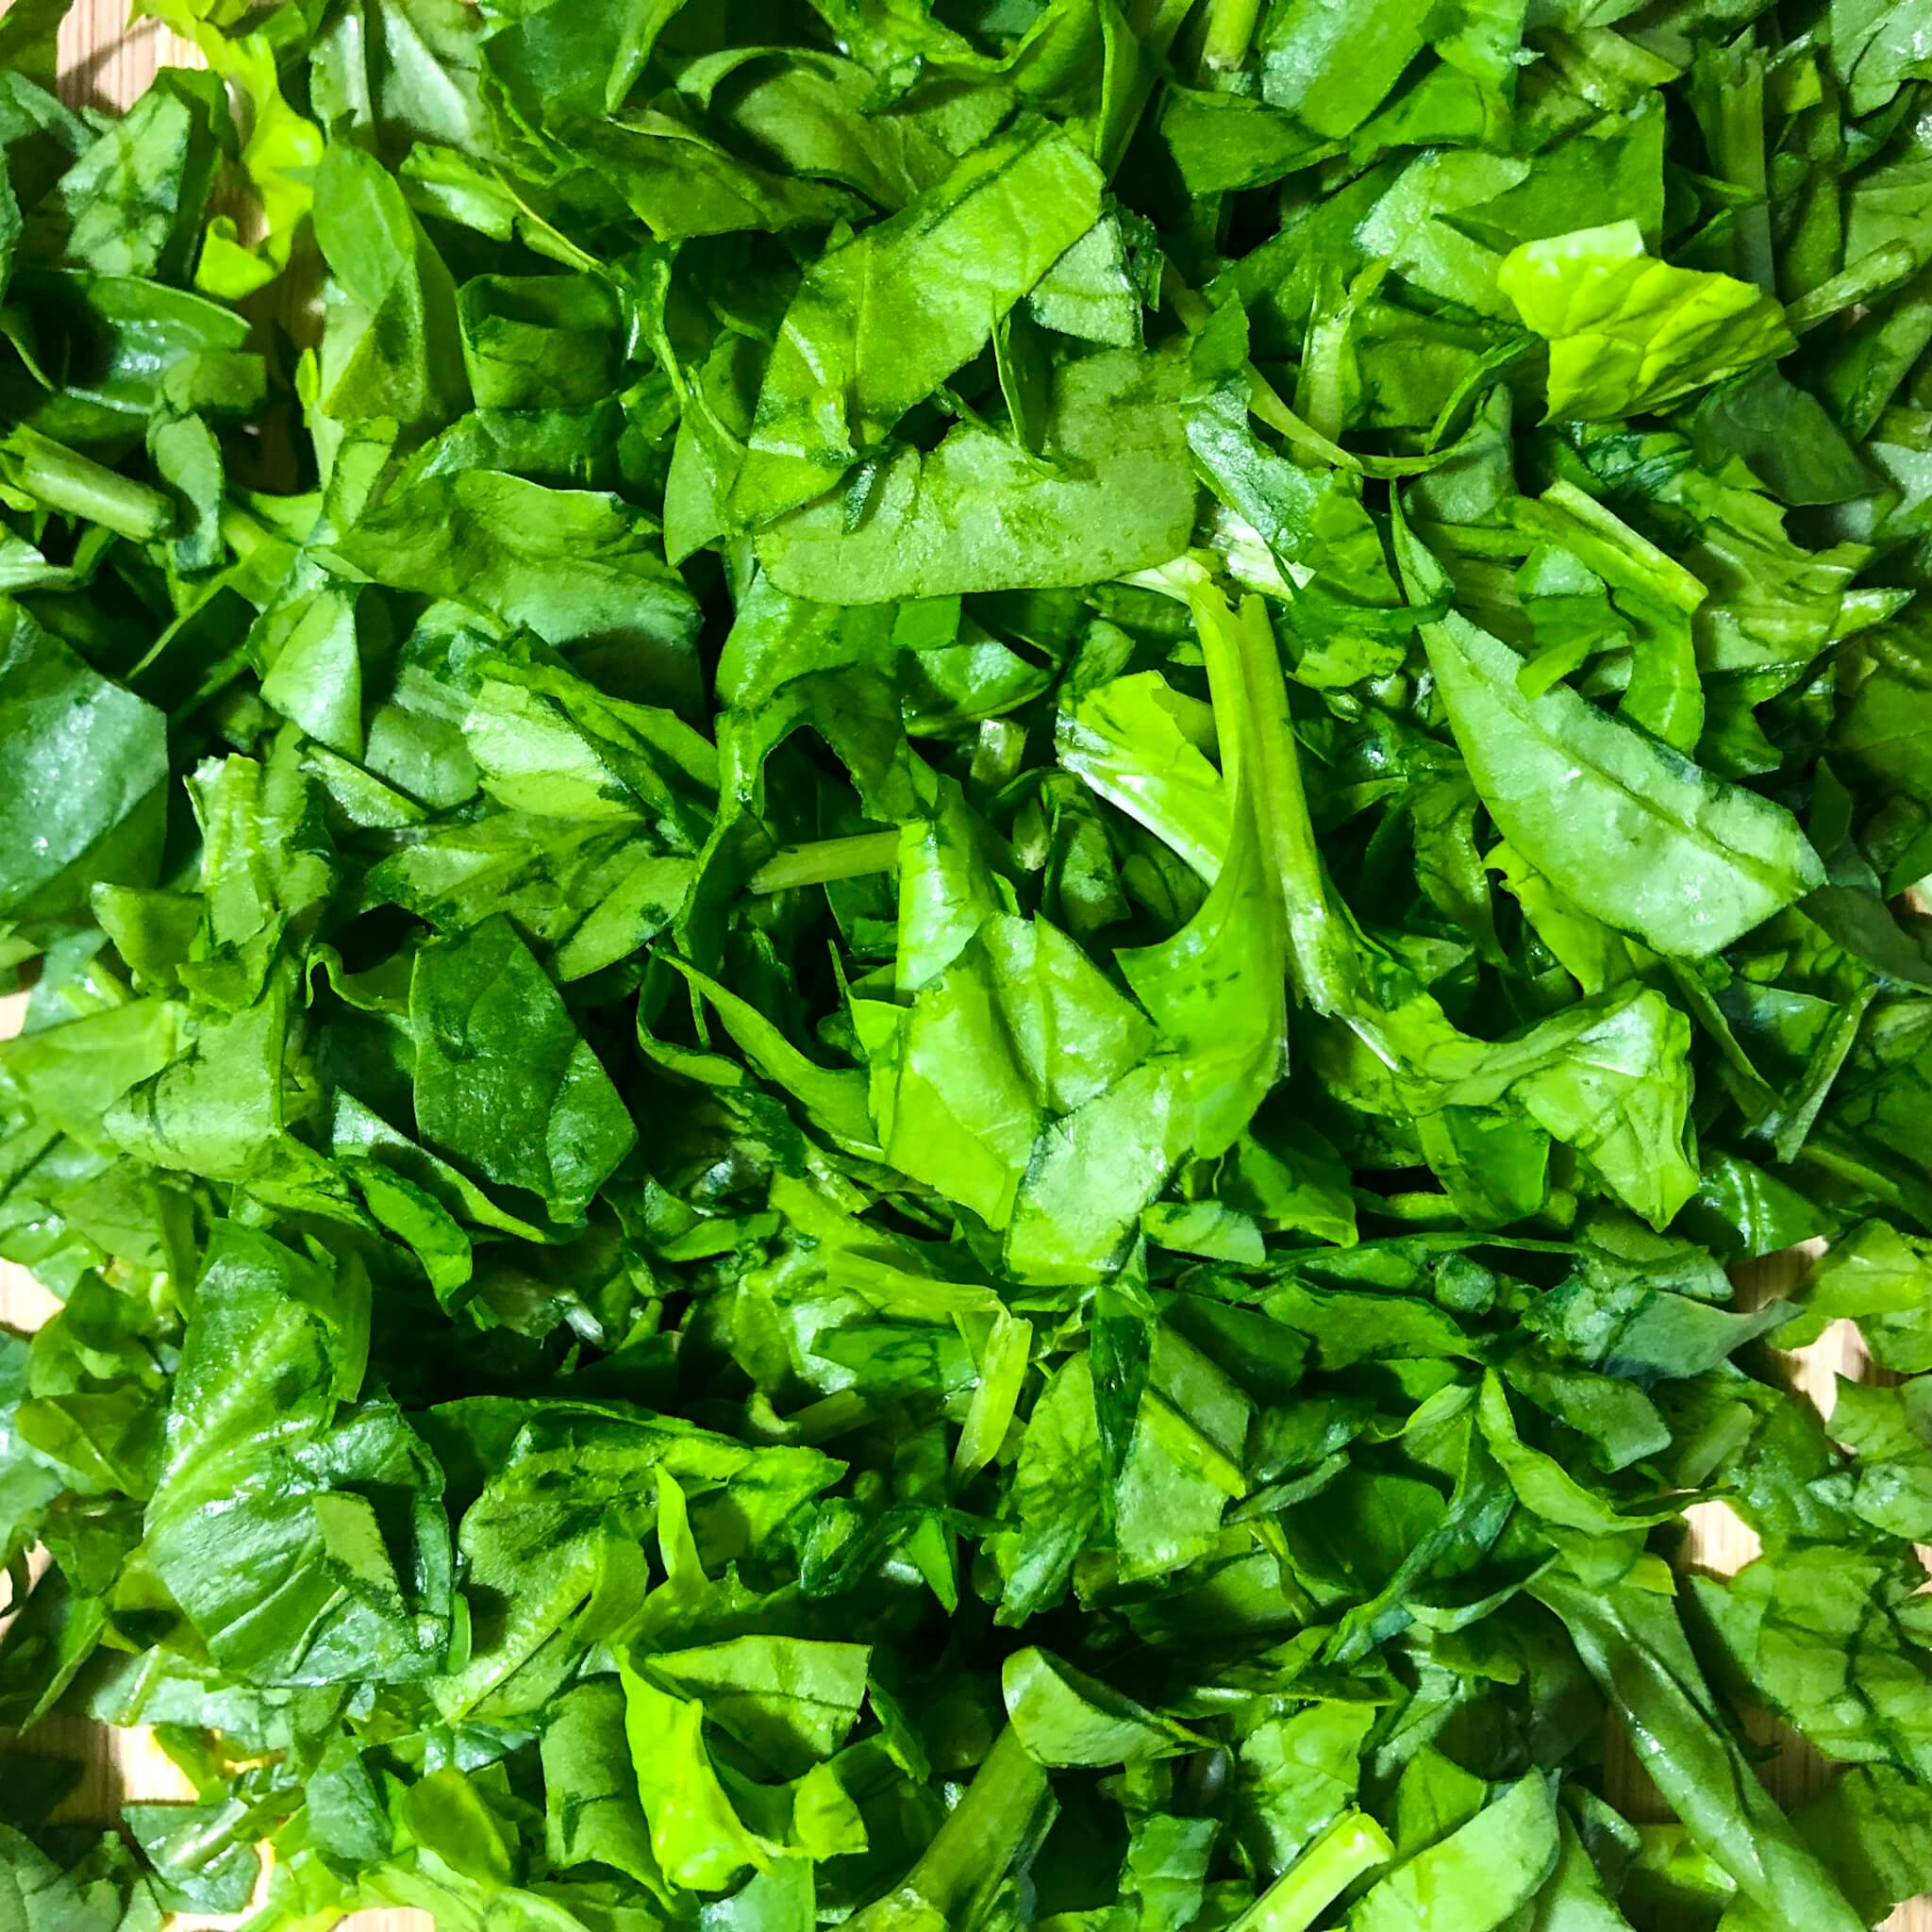 spinach for the spinach lasagna recipe